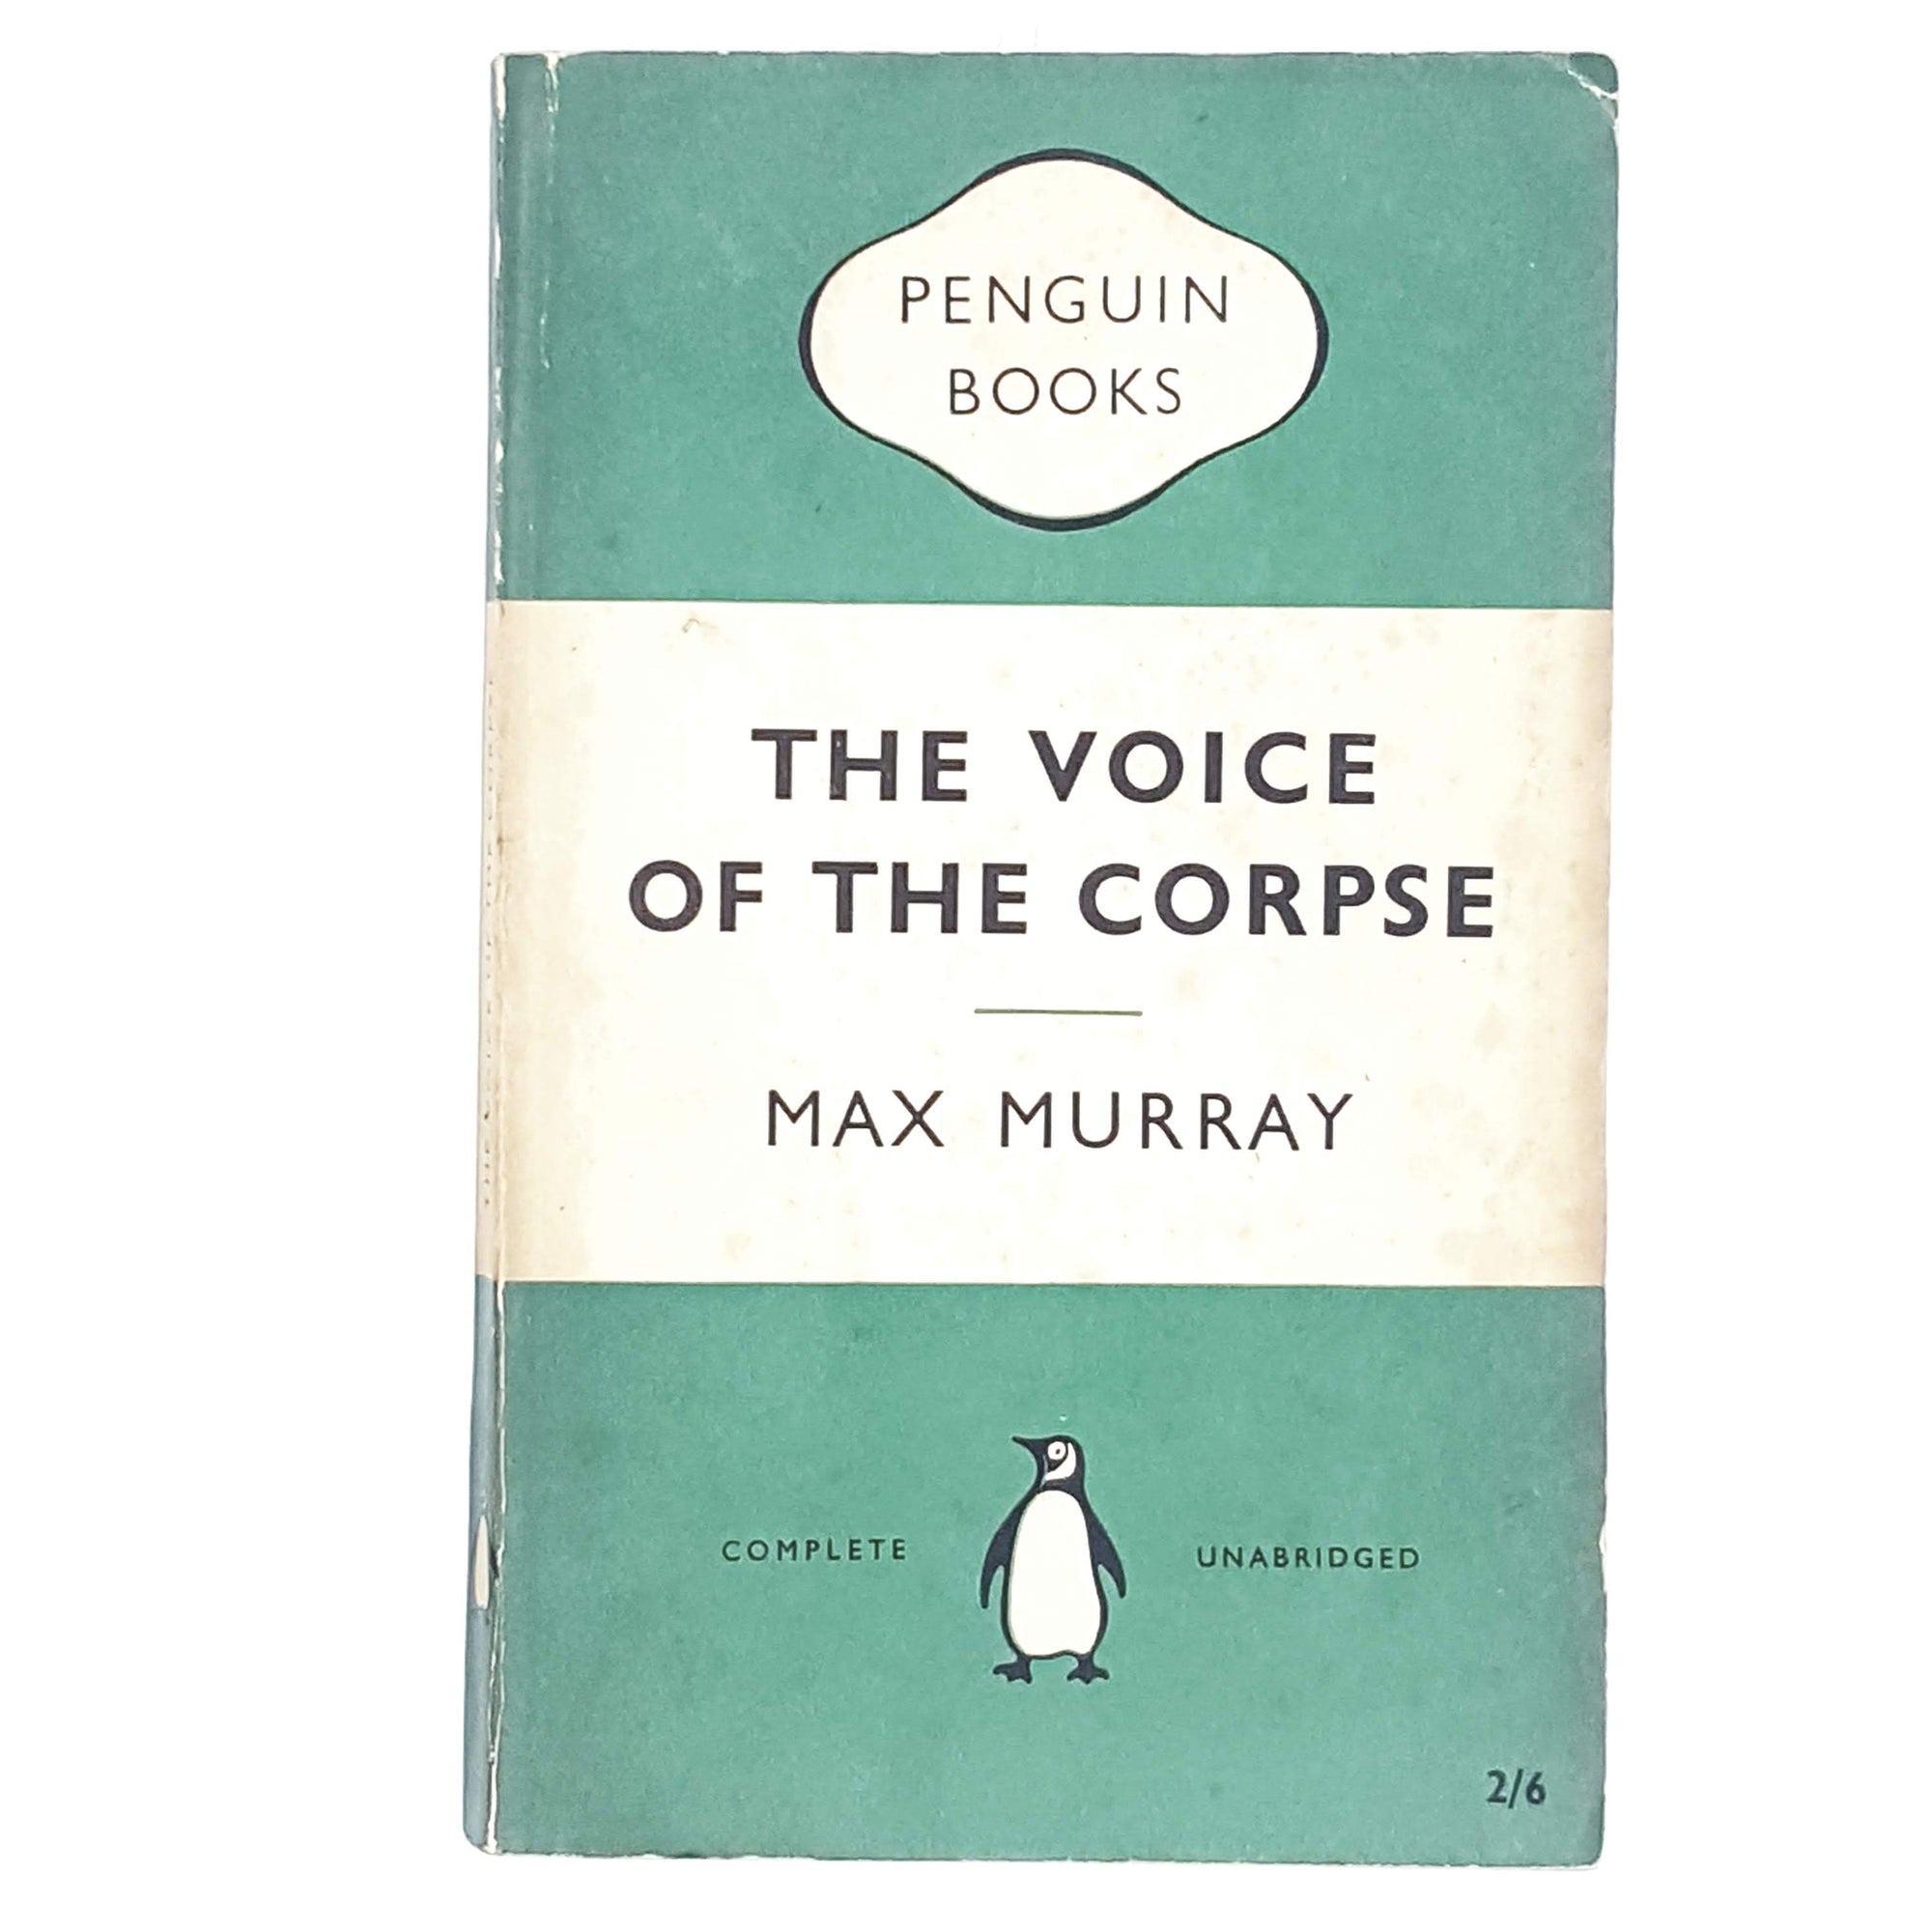 First Edition Penguin The Voice of the Corpse by Max Murray 1956